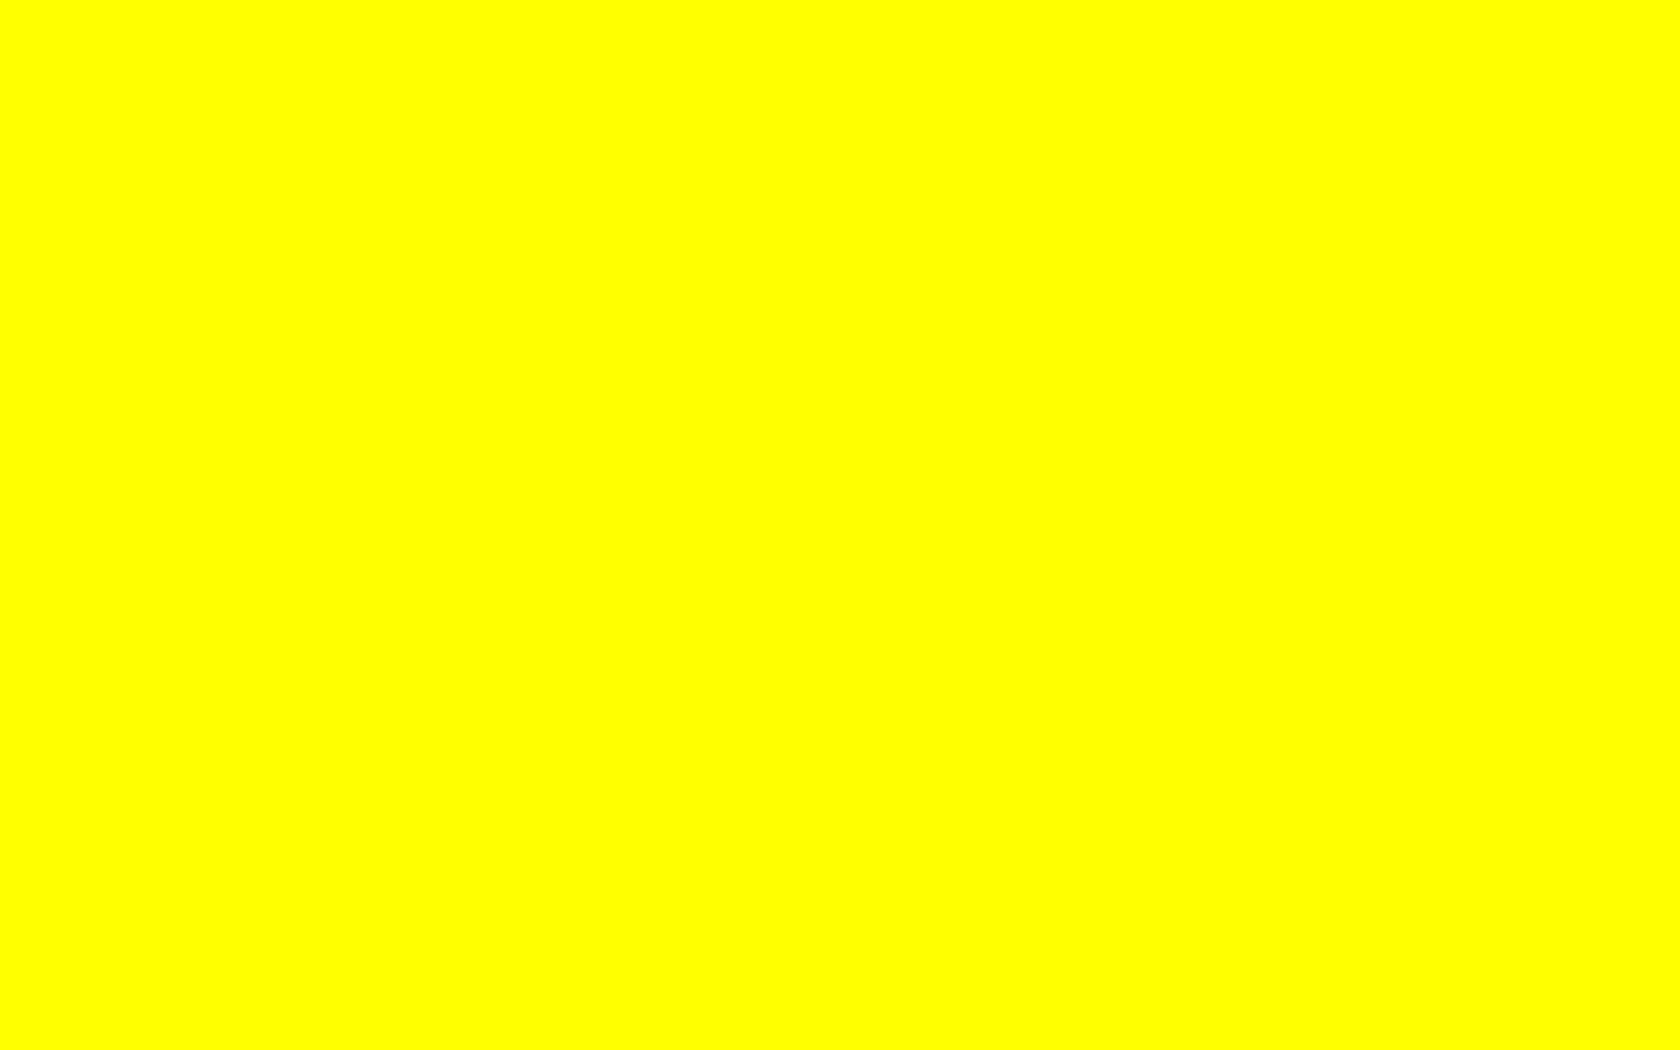 1680x1050 Yellow Solid Color Background